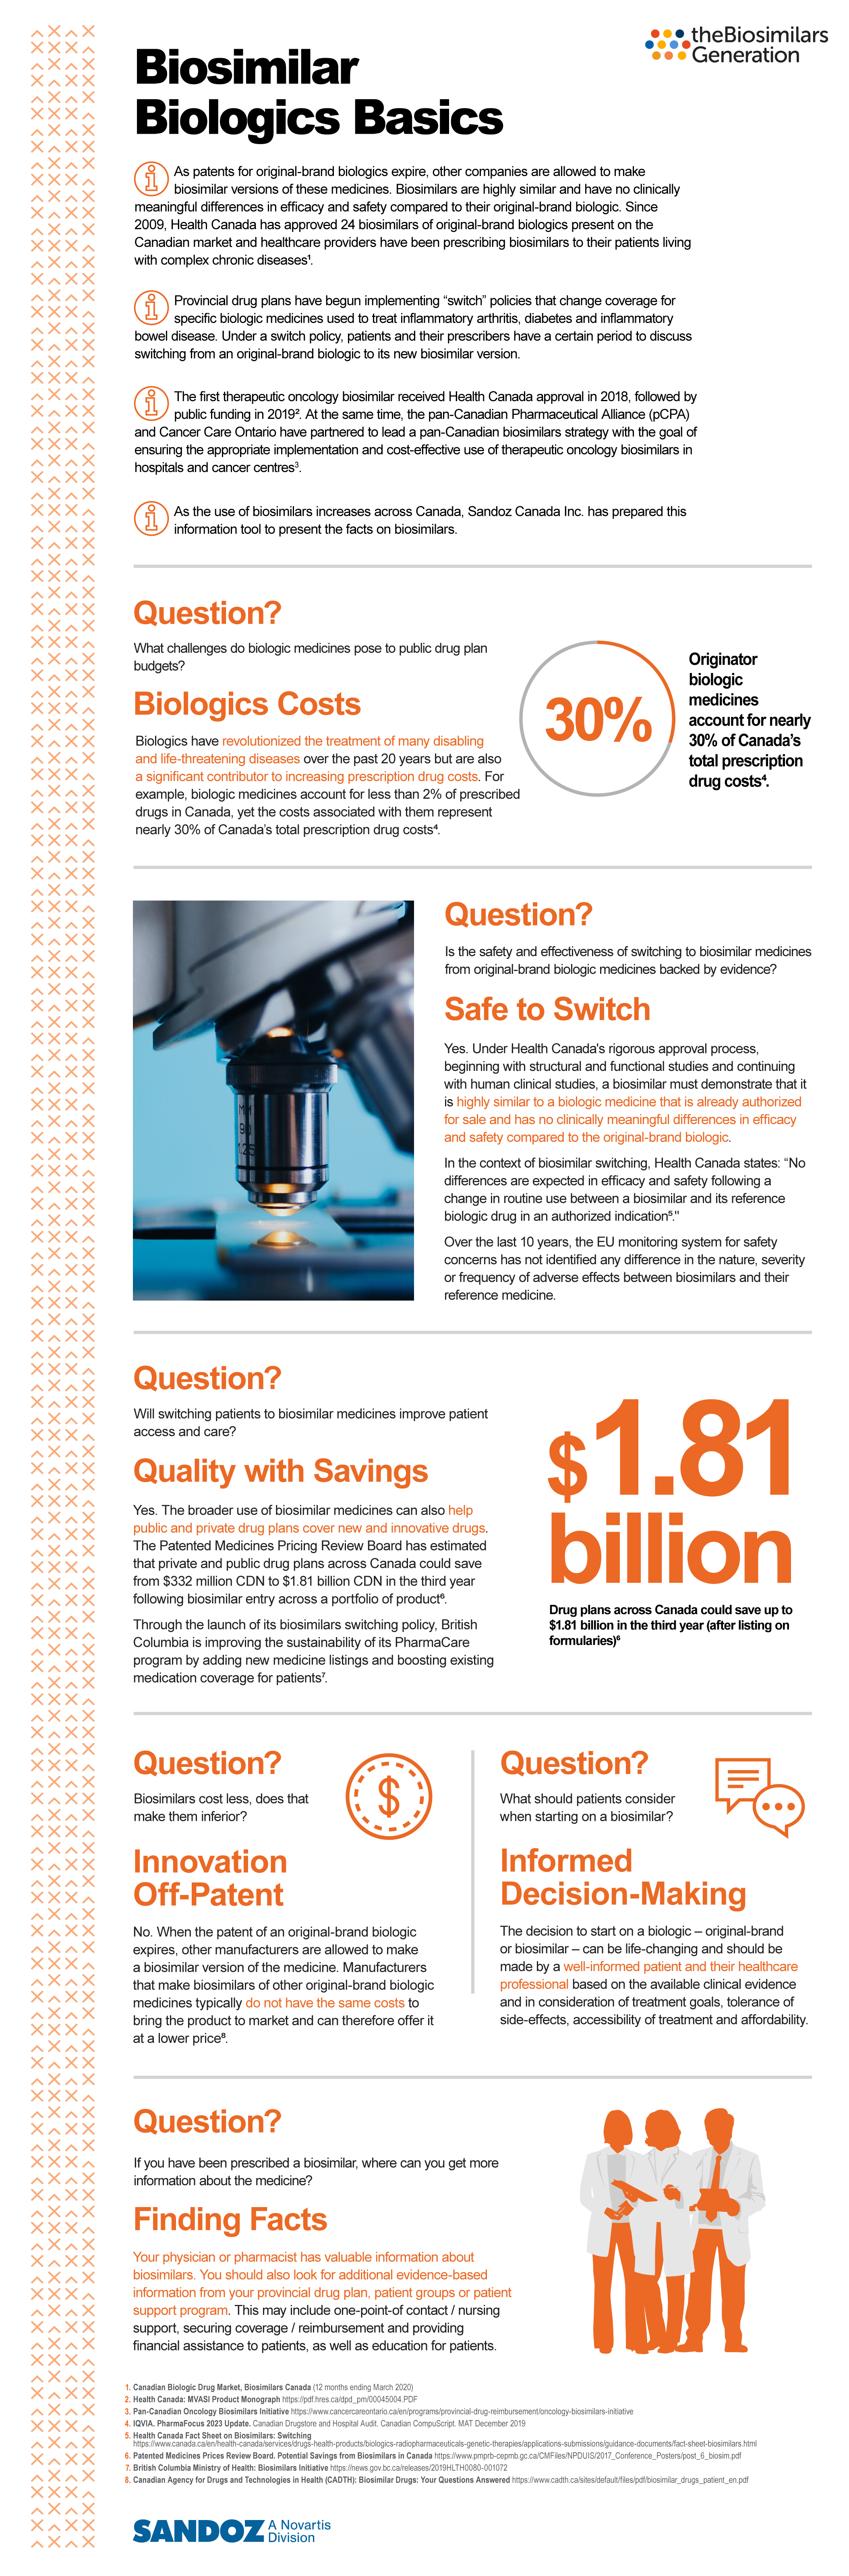 biosimilars infographic 0619 EN_Final